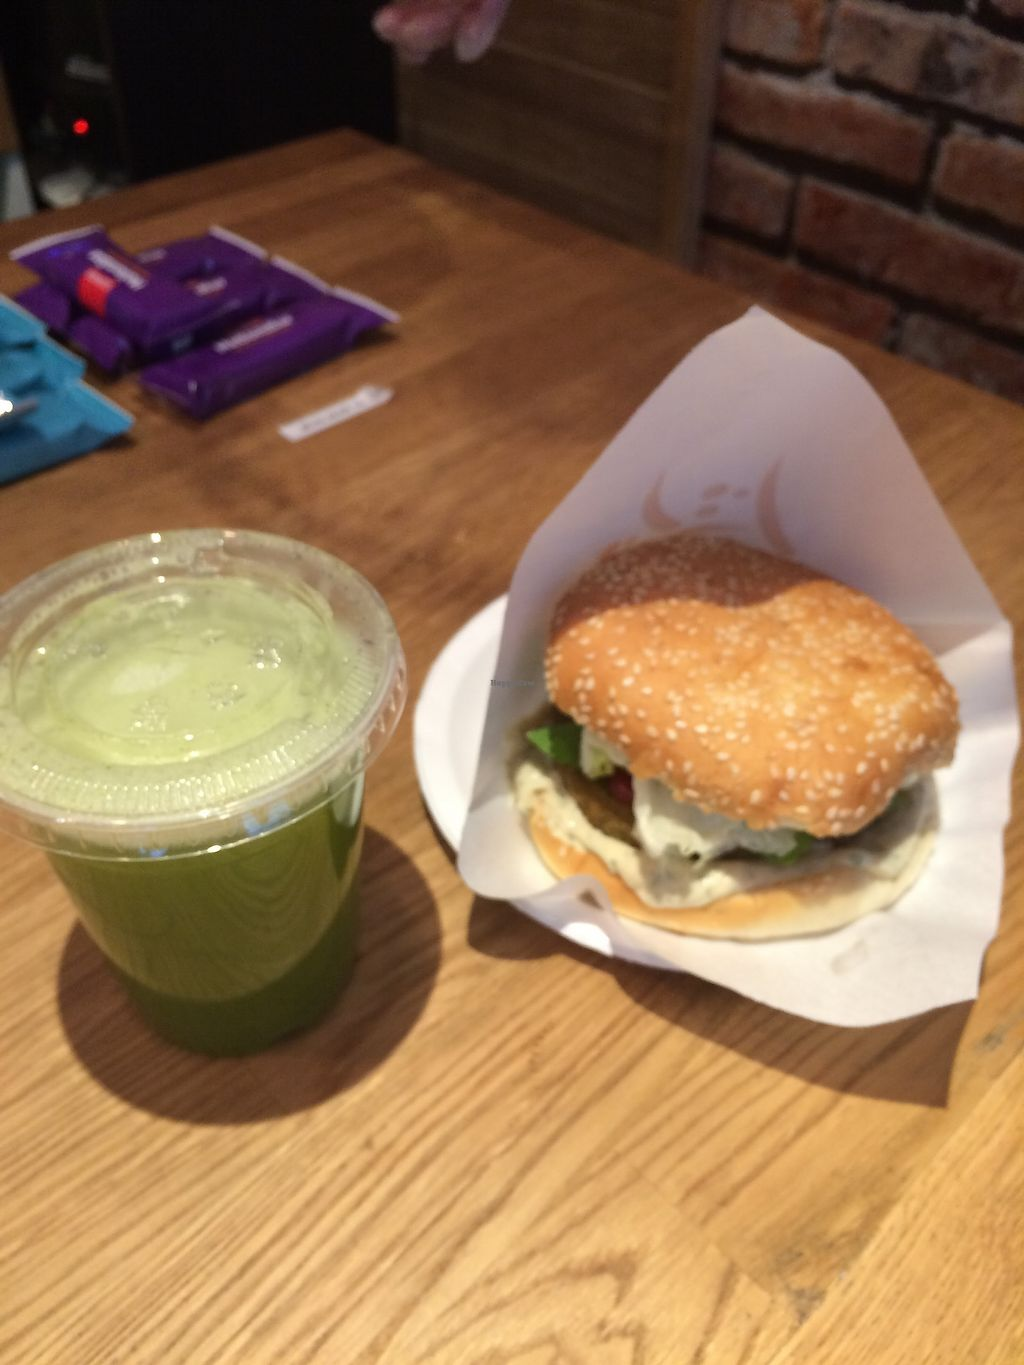 """Photo of Habits Coffee  by <a href=""""/members/profile/TDHill"""">TDHill</a> <br/>Falafel burger and fresh juices <br/> October 23, 2017  - <a href='/contact/abuse/image/103452/317867'>Report</a>"""